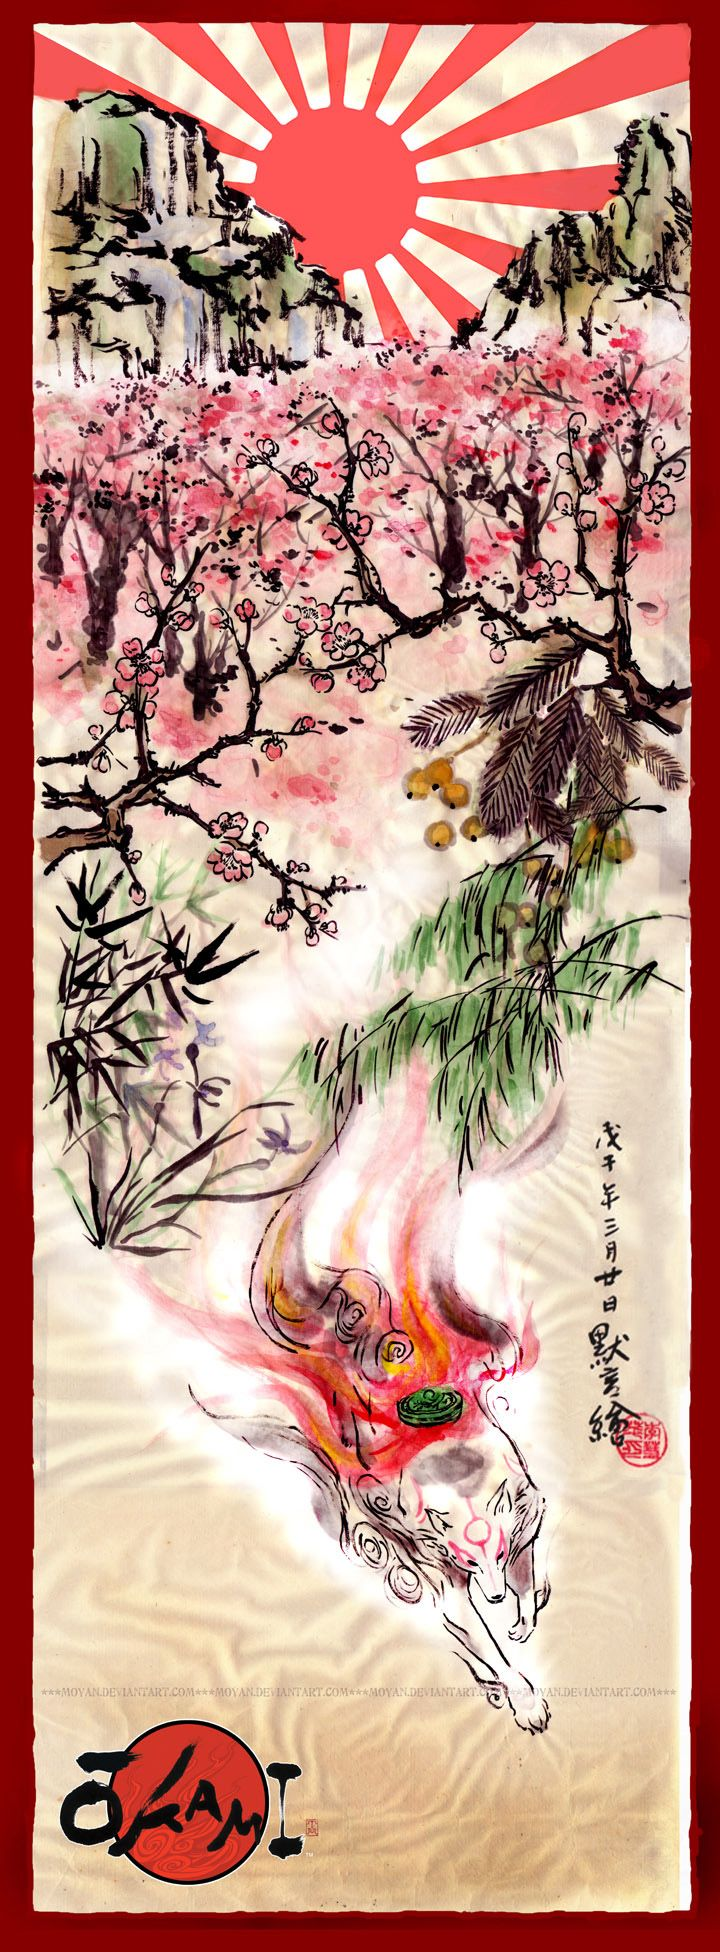 """Okami"" Japanese painting by Moyan Wish I knew what these said, but I like the fox a lot!>>>> THIS IS A VIDEO GAME POSTER. THAT IS THE SUN GODDESS AMATERASU IN THE FORM OF A WHITE DOG. HOW IN THE WORLD DOES THAT LOOK LIKE A FOX??"